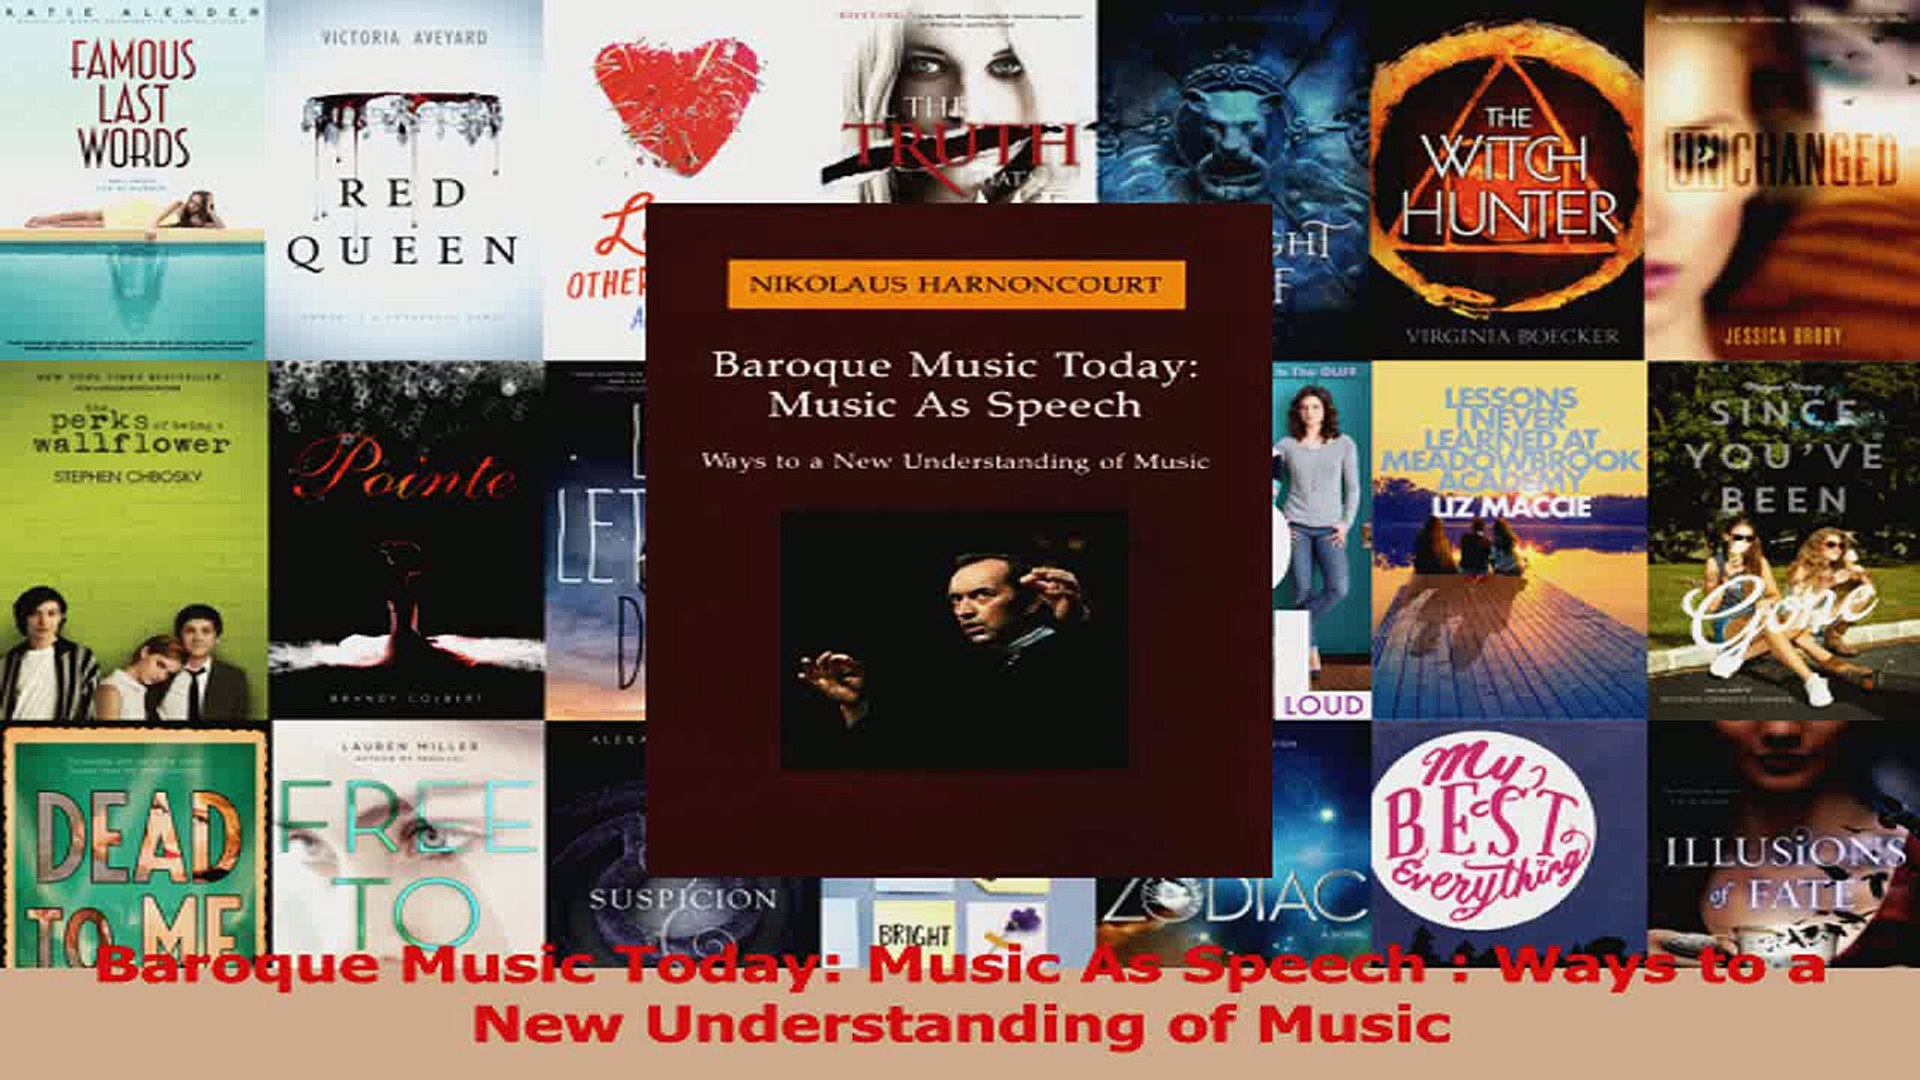 Download  Baroque Music Today Music As Speech  Ways to a New Understanding of Music Ebook Free